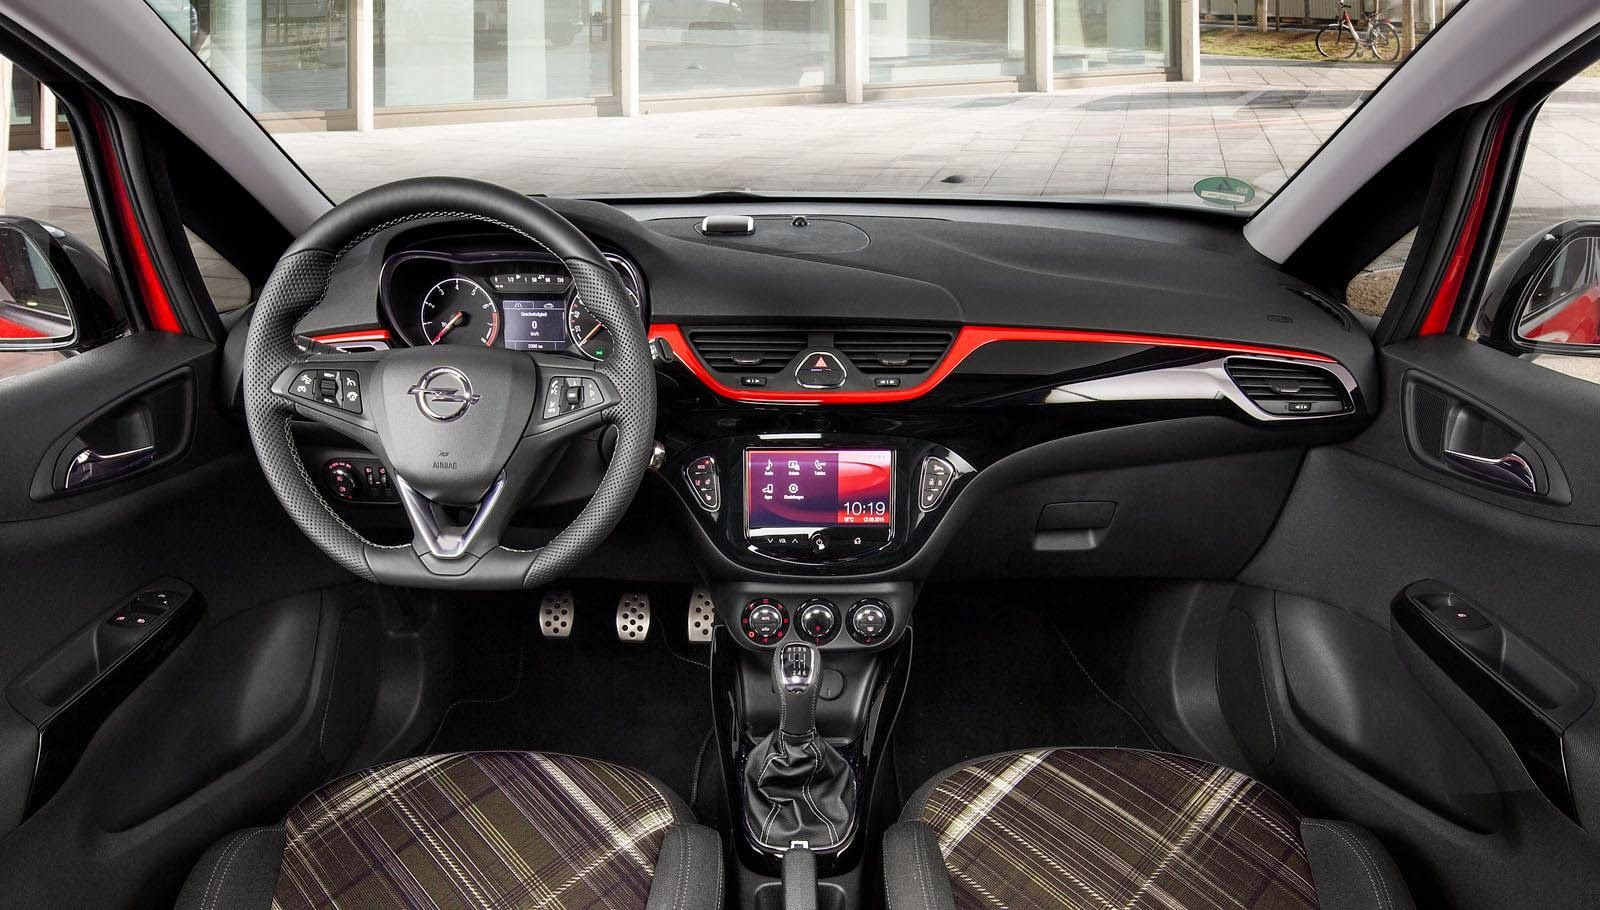 Opel Corsa 2015, interior | Cars | Pinterest | Opel corsa, Cars and ...